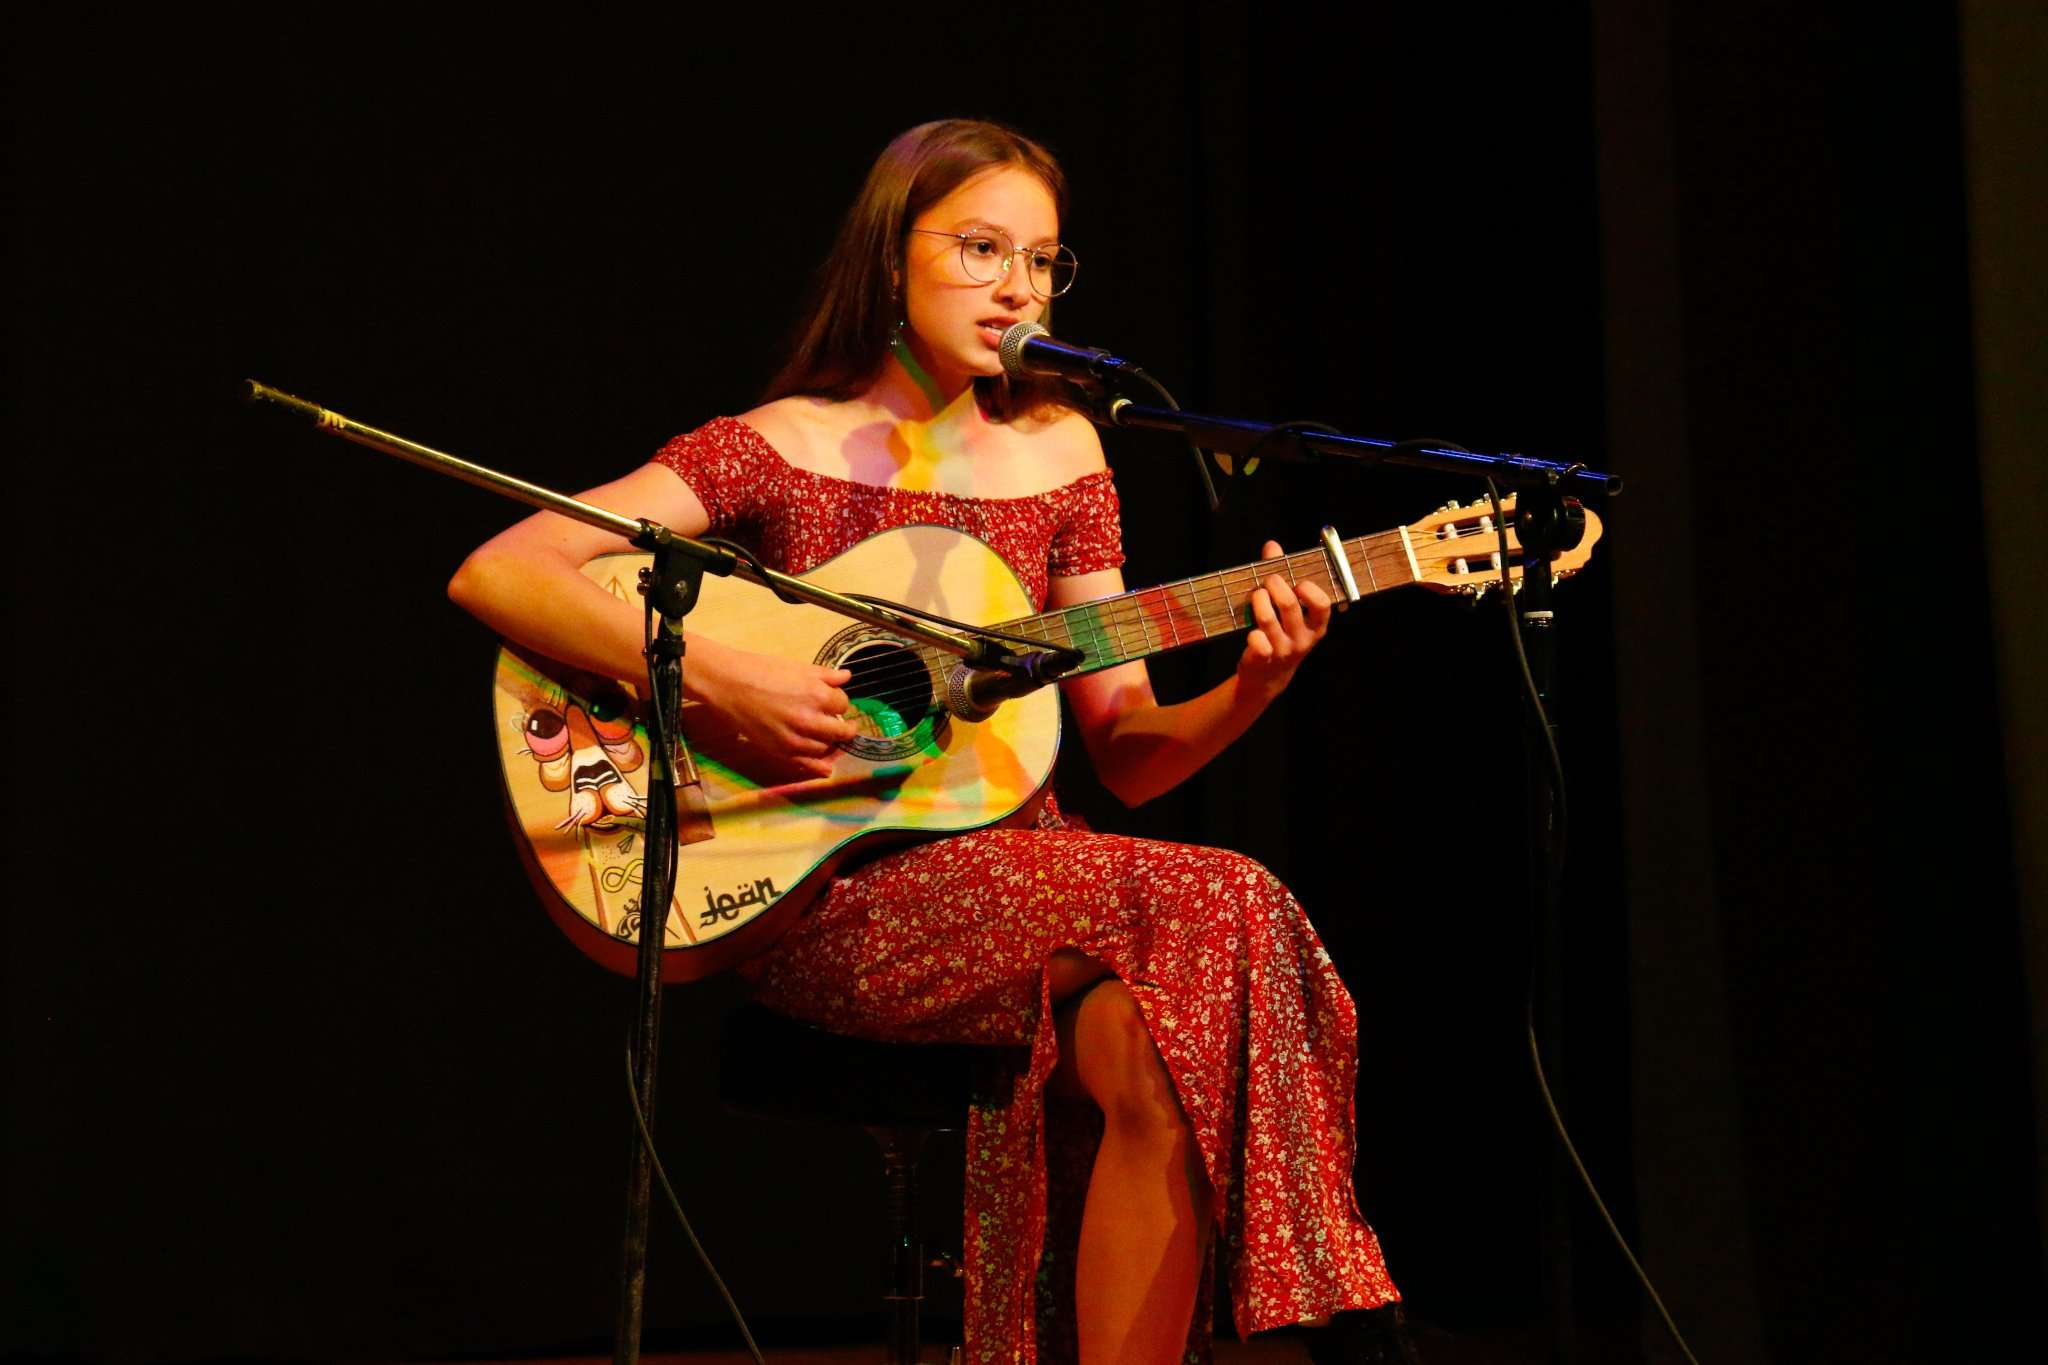 HomeGrown Talent Showcase presented by Southern Forest Arts in 2020, featuring Northcliffe performer, Maddison Bennett, at the Northcliffe Town Hall